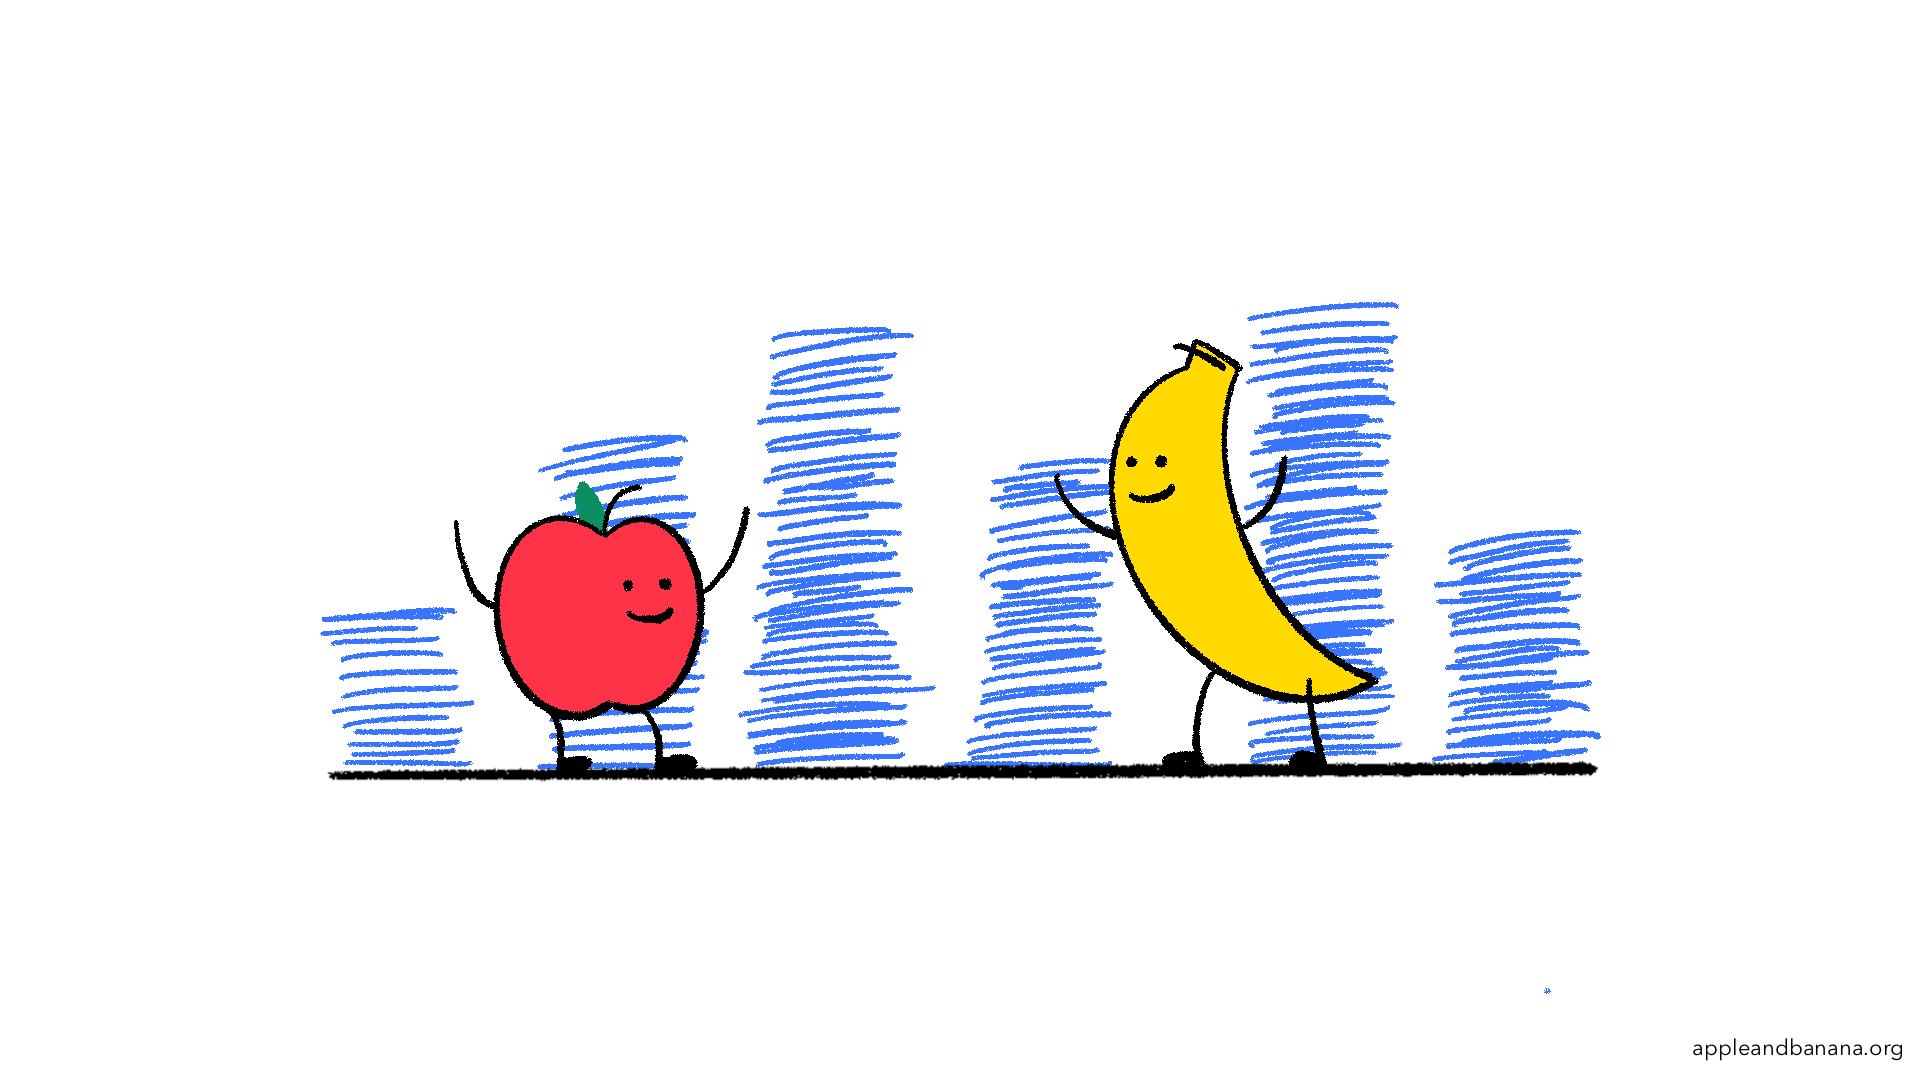 Apple & Banana standing in front of all of the data they just collected from doing user research